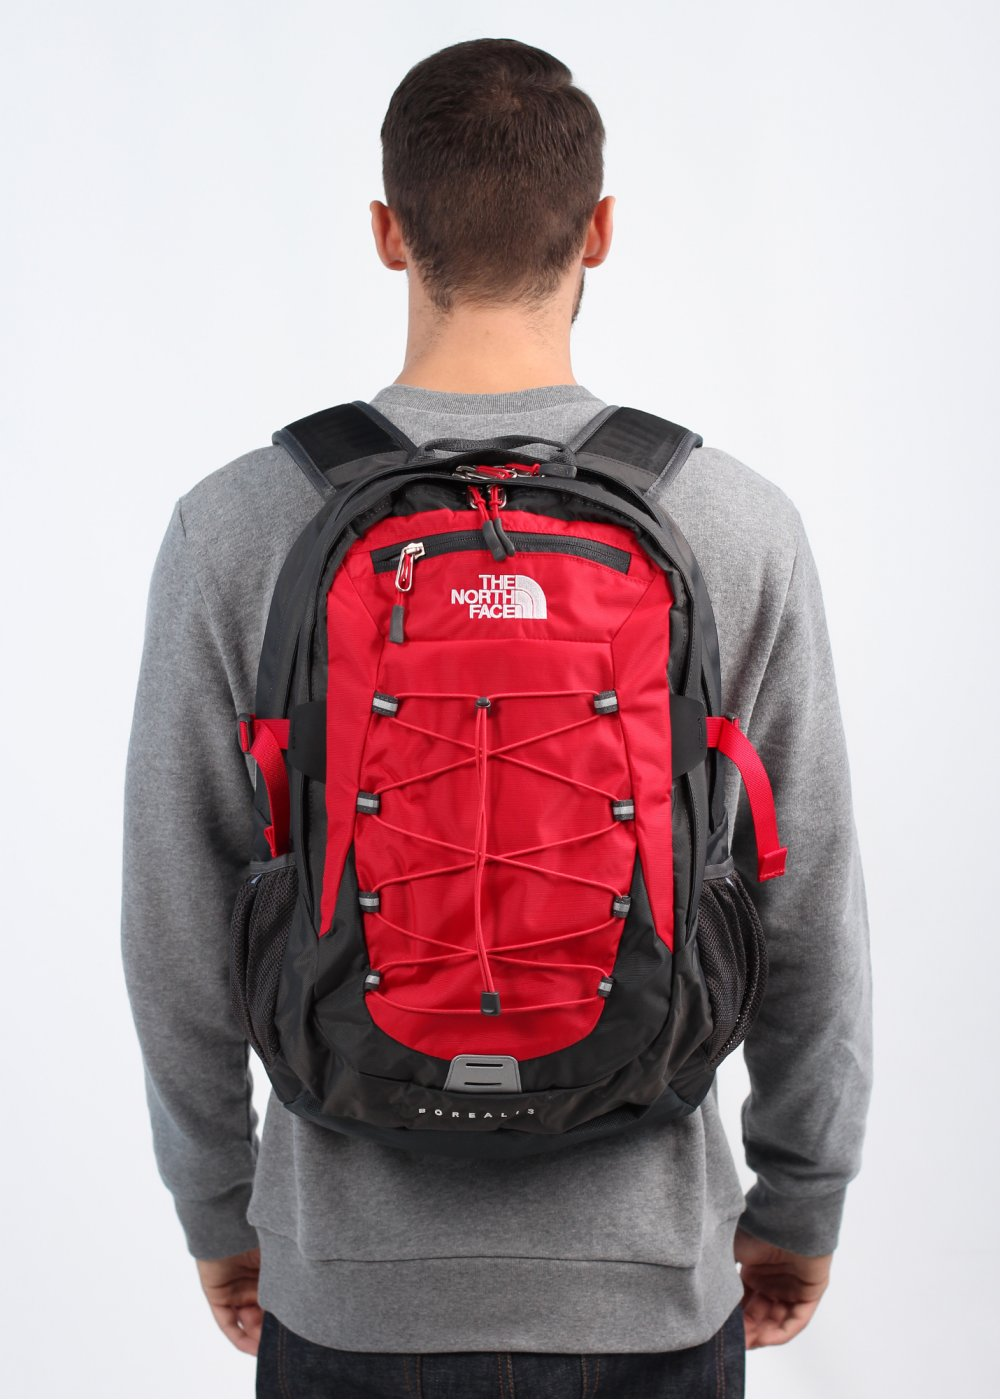 The North Face Borealis Backpack Bag - Red / Grey